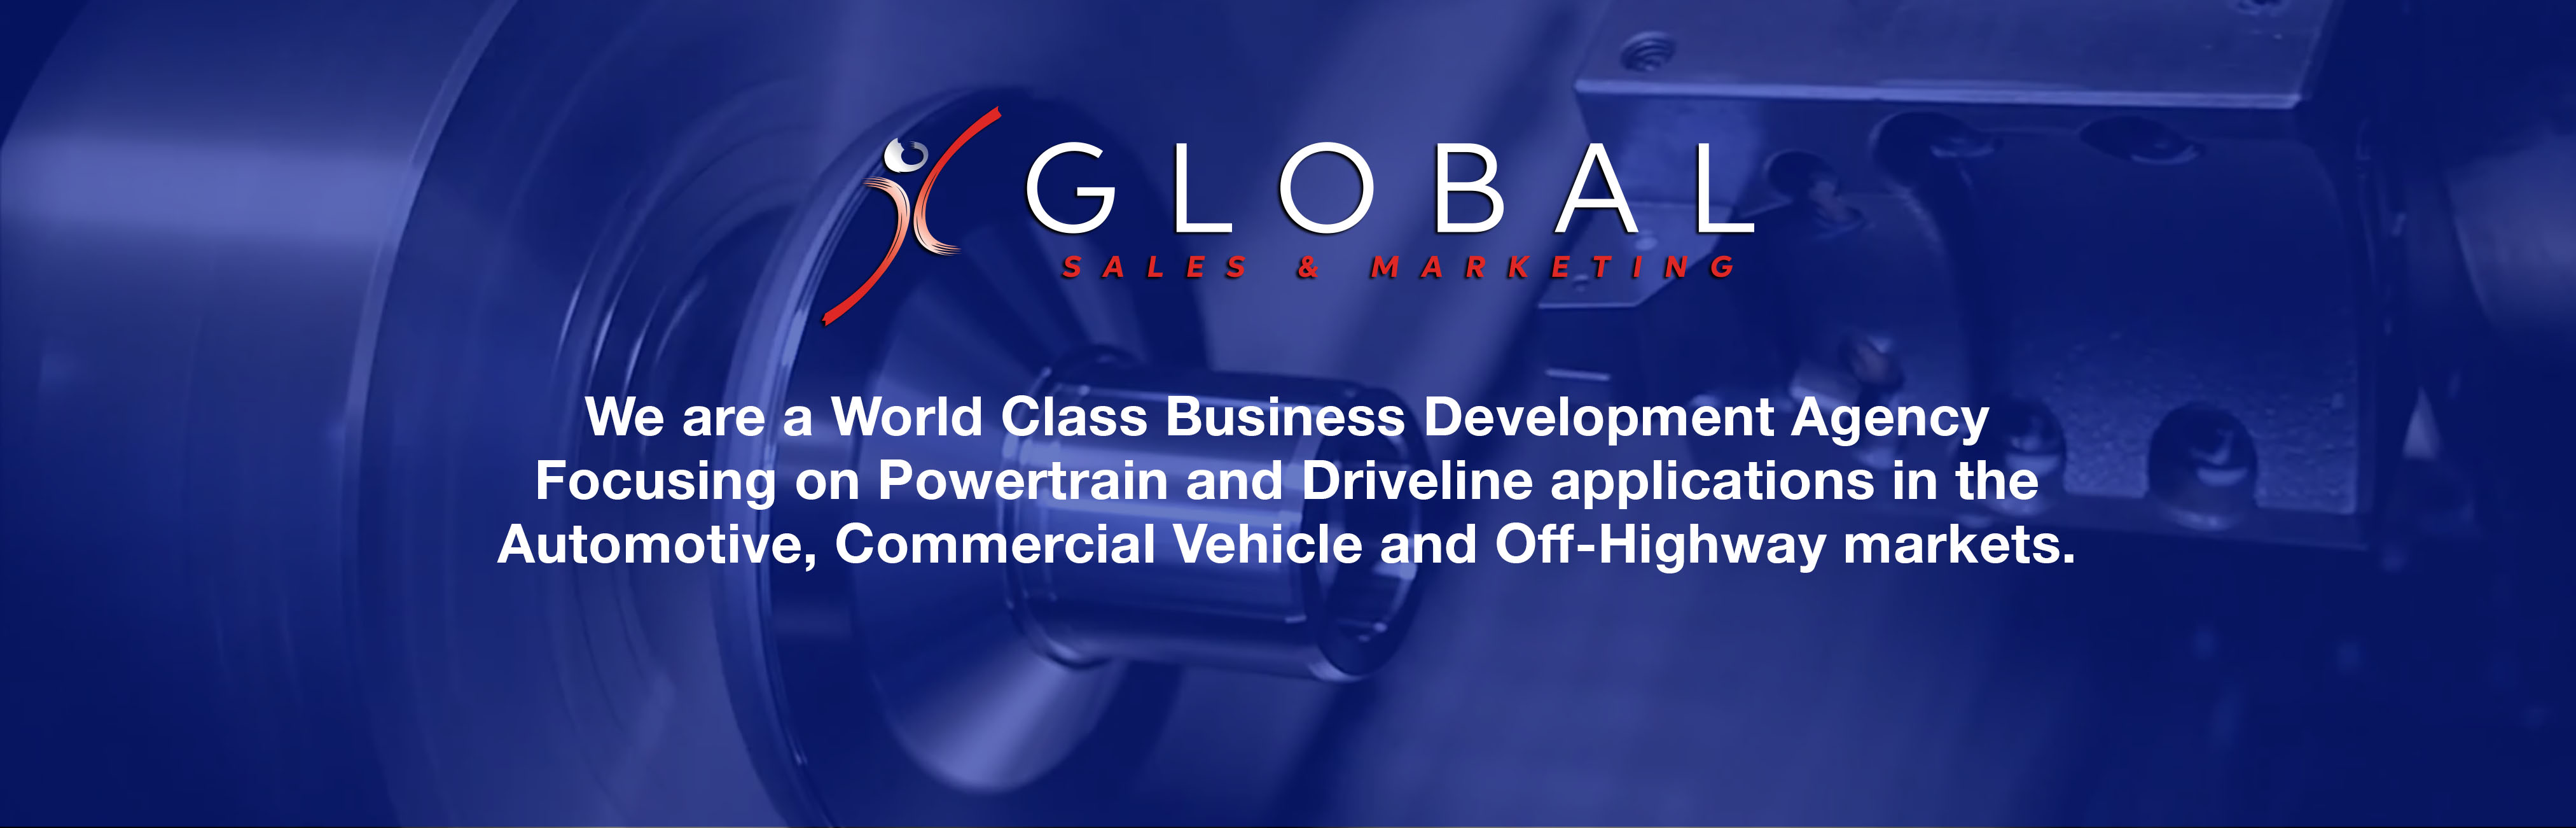 23f0728abc Global Sales and Marketing